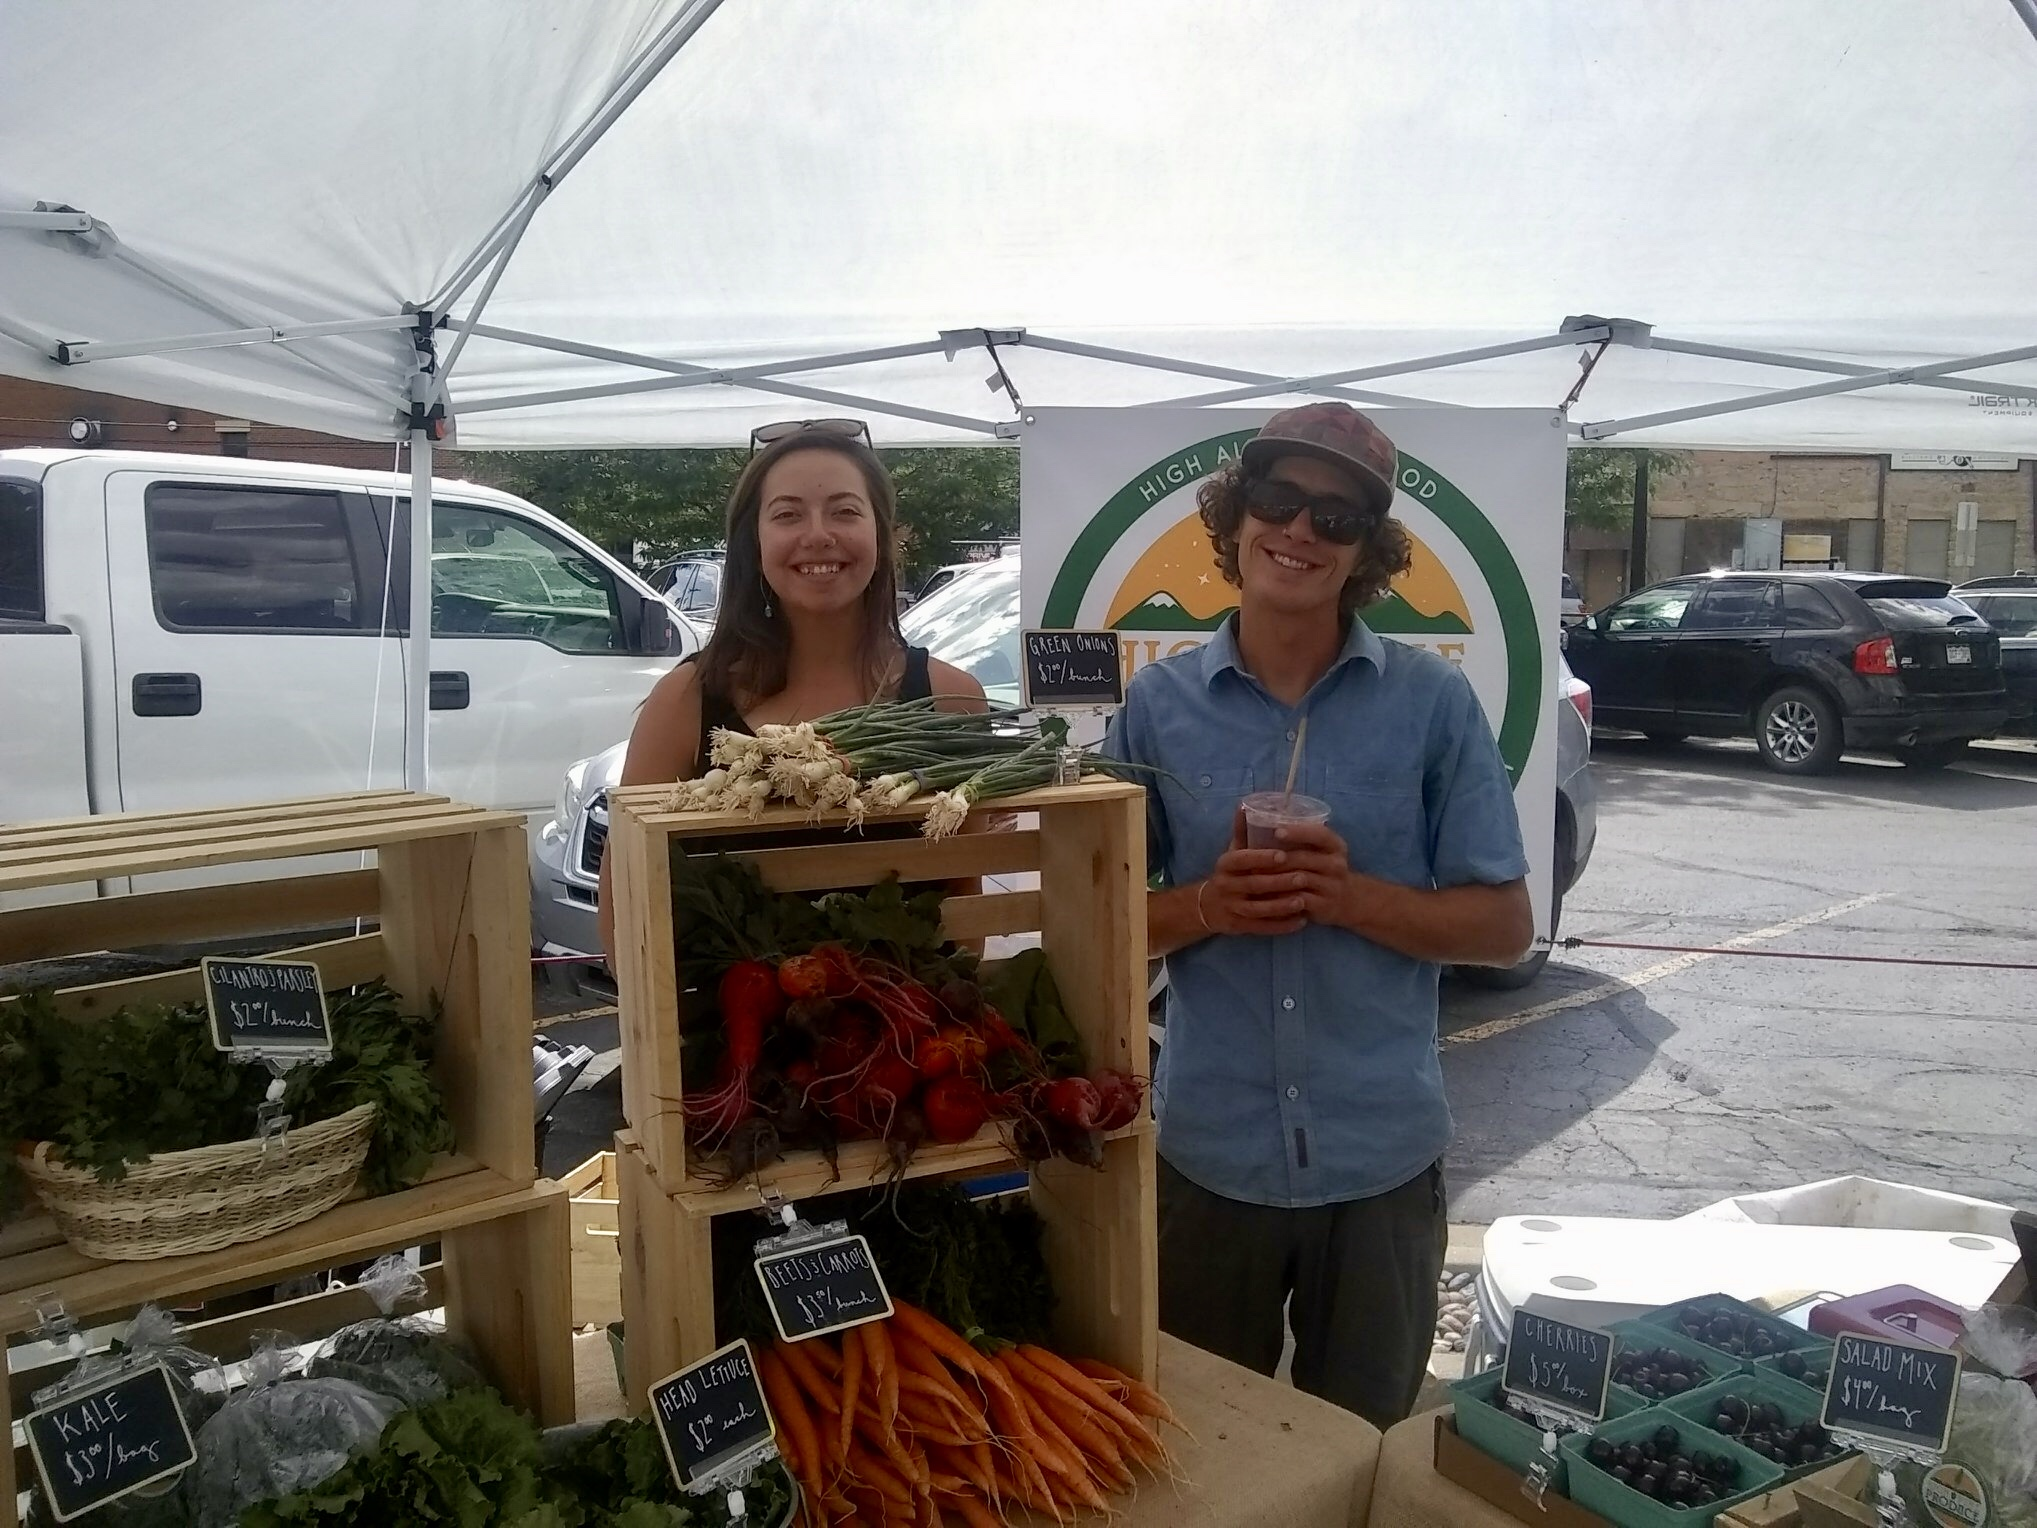 Find your tired farmers at the Durango Farmers Market every Saturday 8-noon!